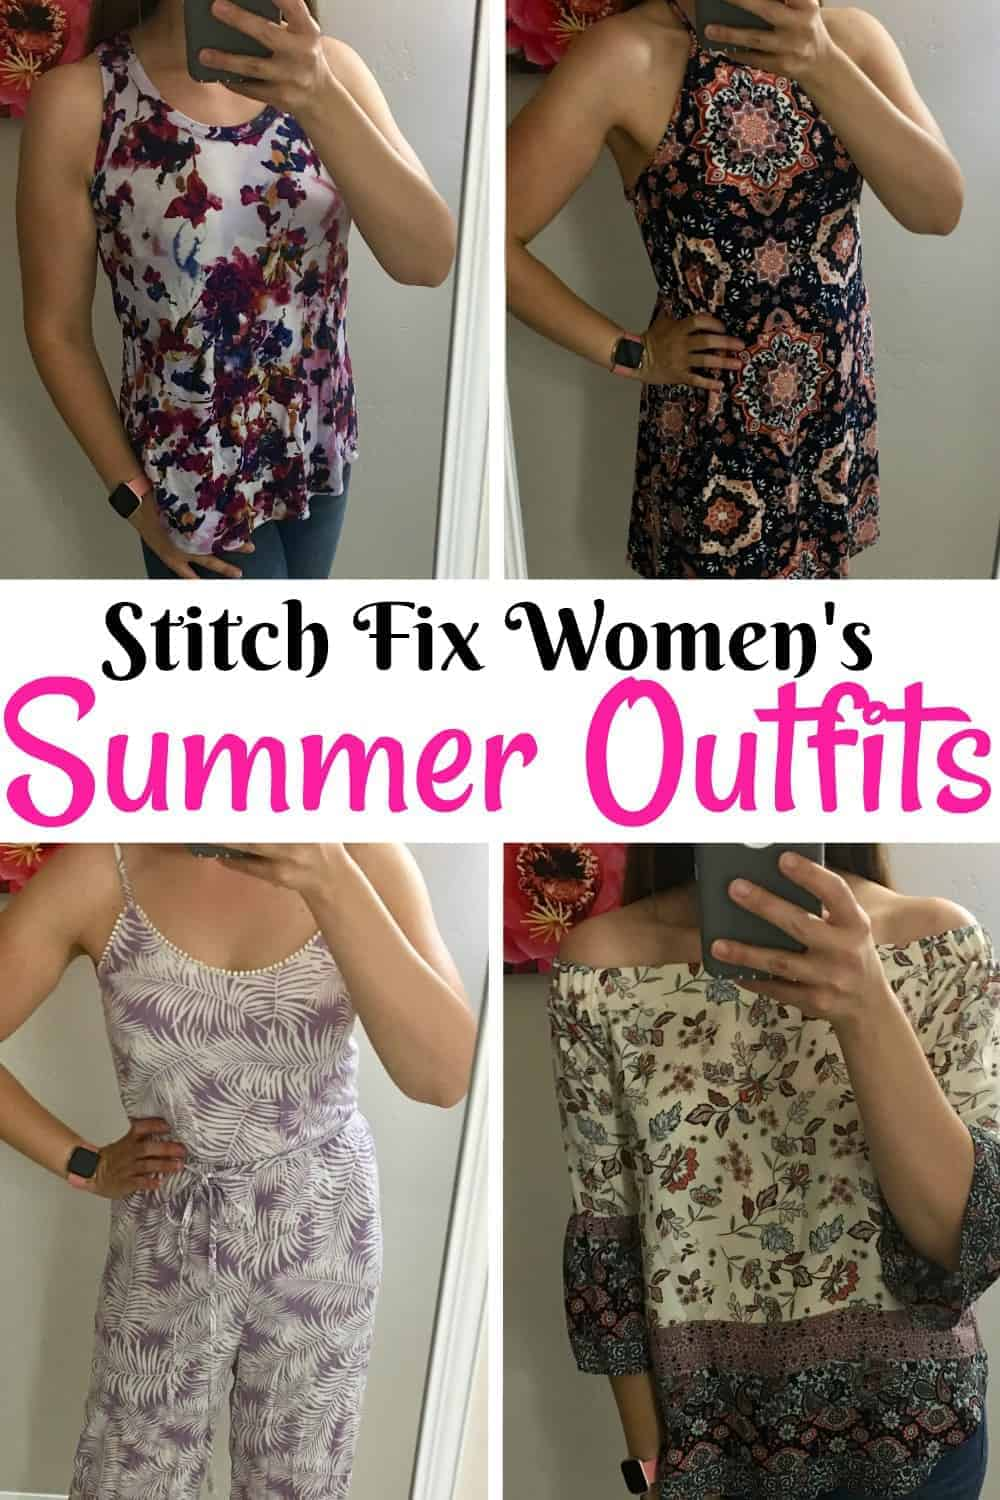 Cute Summer Outfits For Vacation: Stitch Fix Summer Outfits